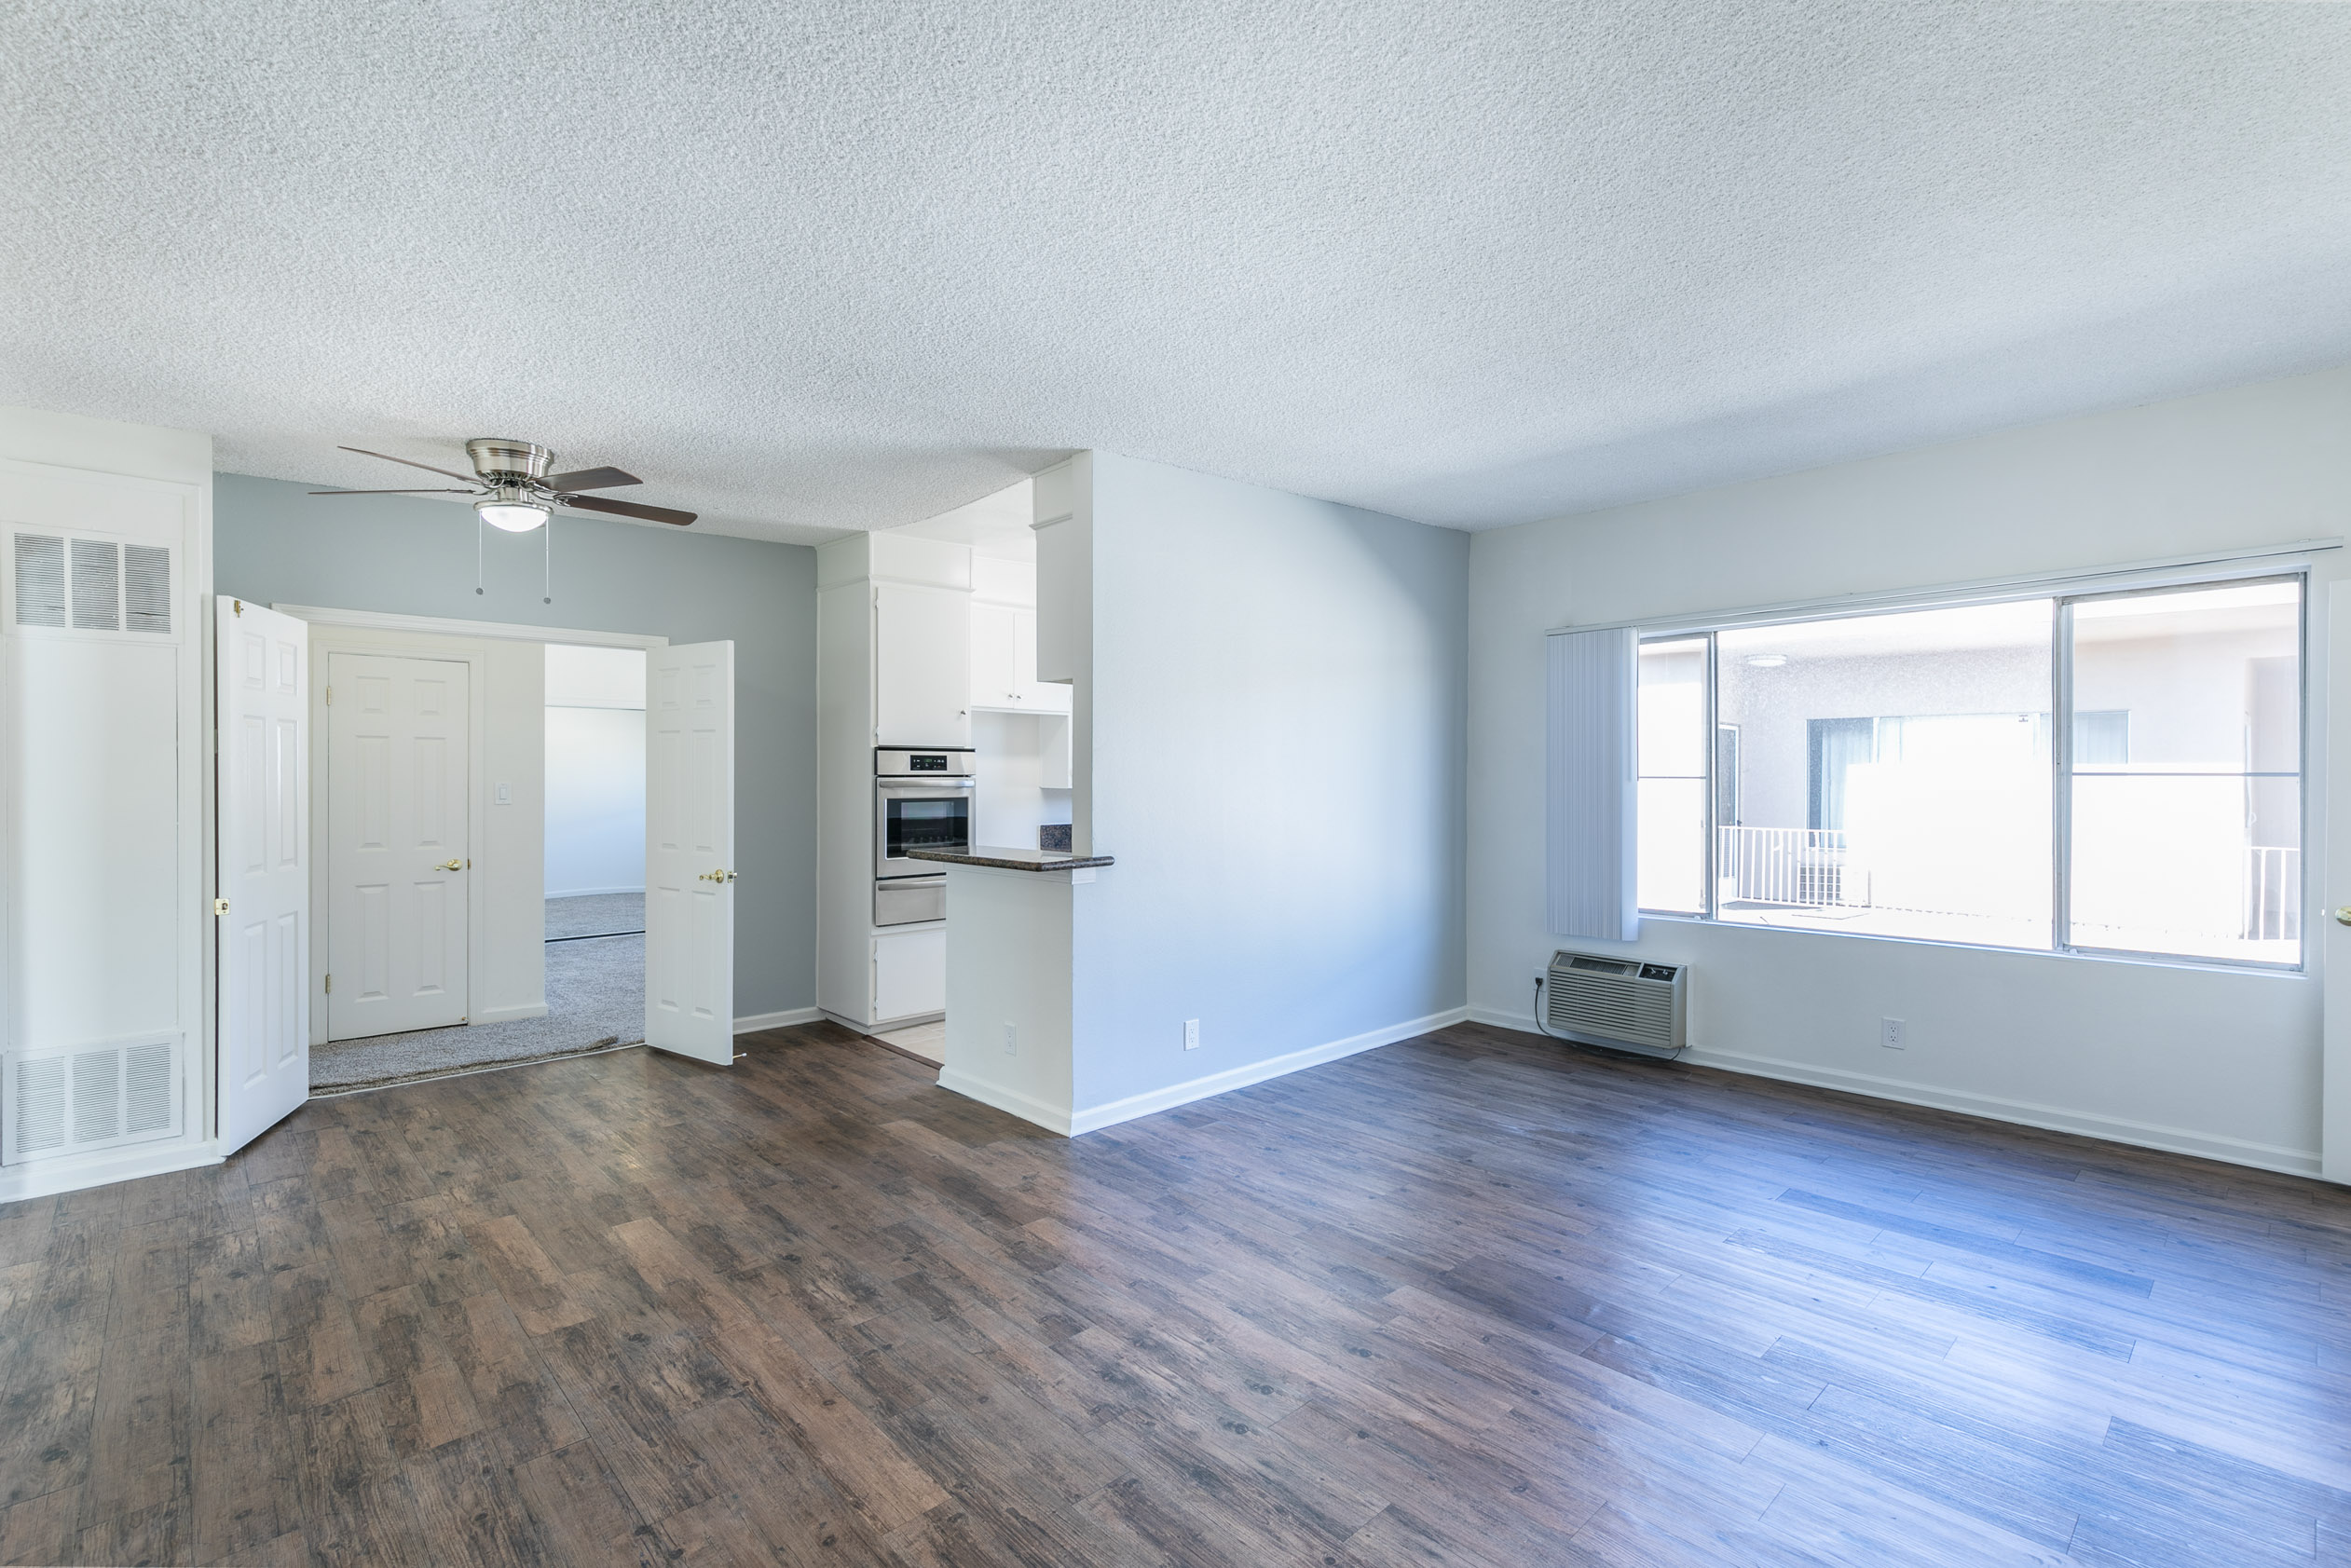 AMAZING 3 BEDROOM, 2 BATH VALLEY VILLAGE Upper Unit APARTMENT! MINUTES TO RESTAURANTS, GELSON'S, FREEWAY ACCESS, AND THE SOON TO BE COMPLETED NOHO WEST!